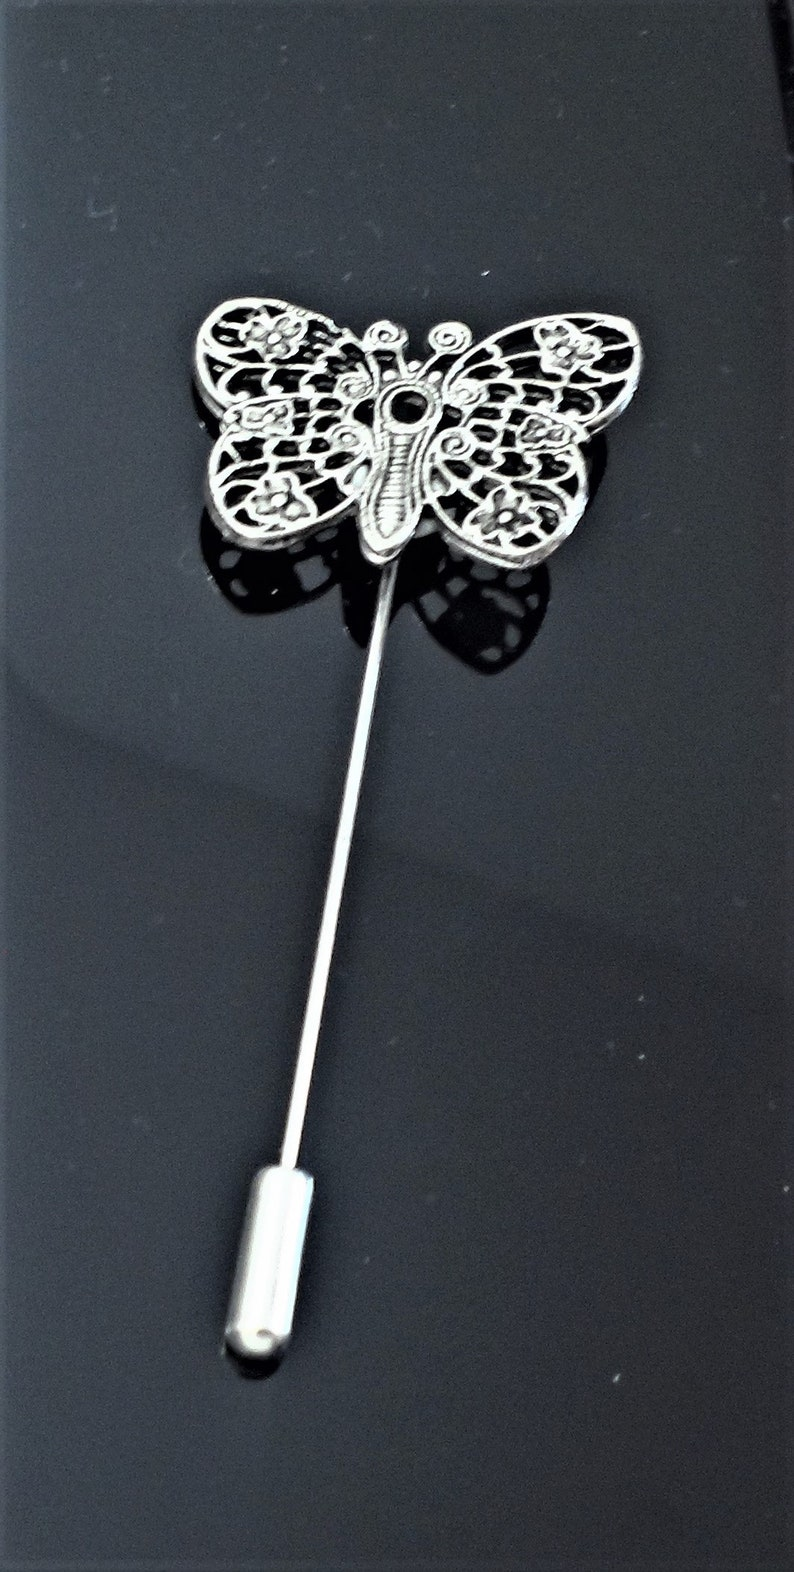 Amazing Details BUTTERFLY Stick Pin Lapel Pin Tack Pin Tie Pin  D 025